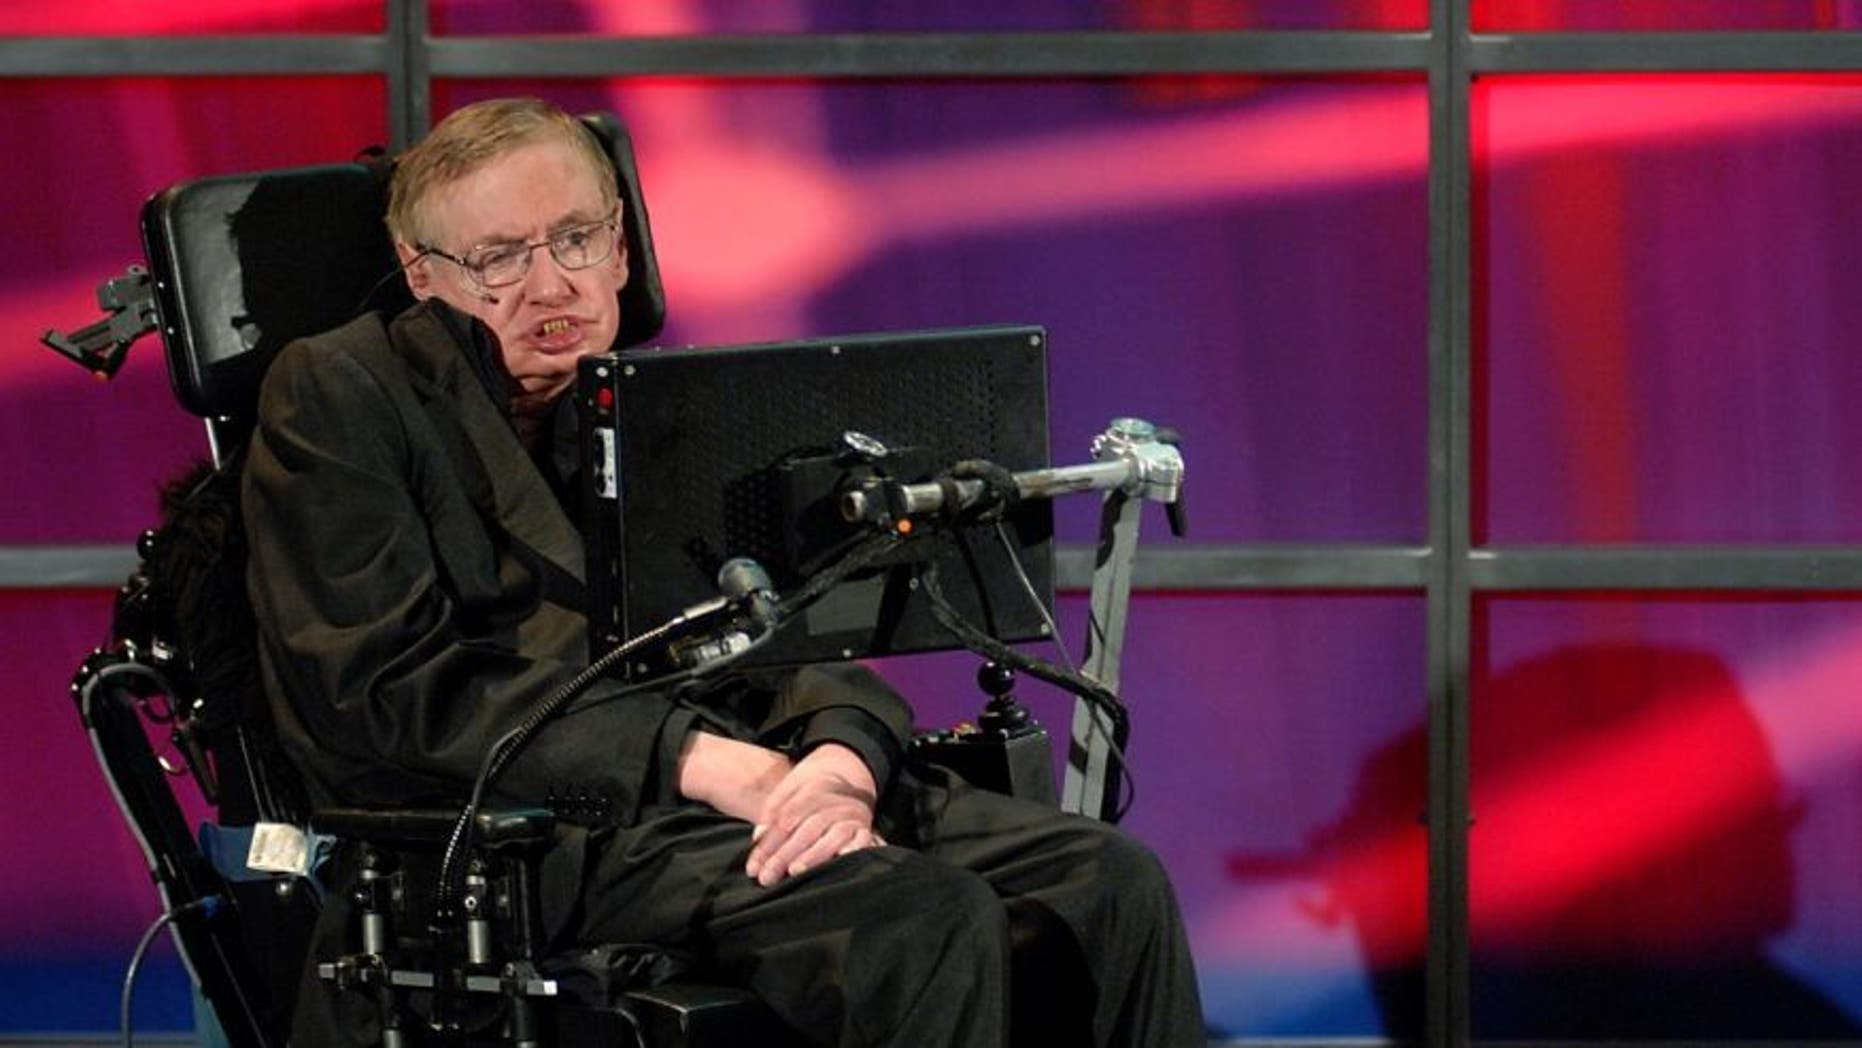 Theoretical physicist Stephen Hawking speaks at his official welcoming ceremony at Perimeter Institute For Theoretical Physics in Kitchener in 2014.